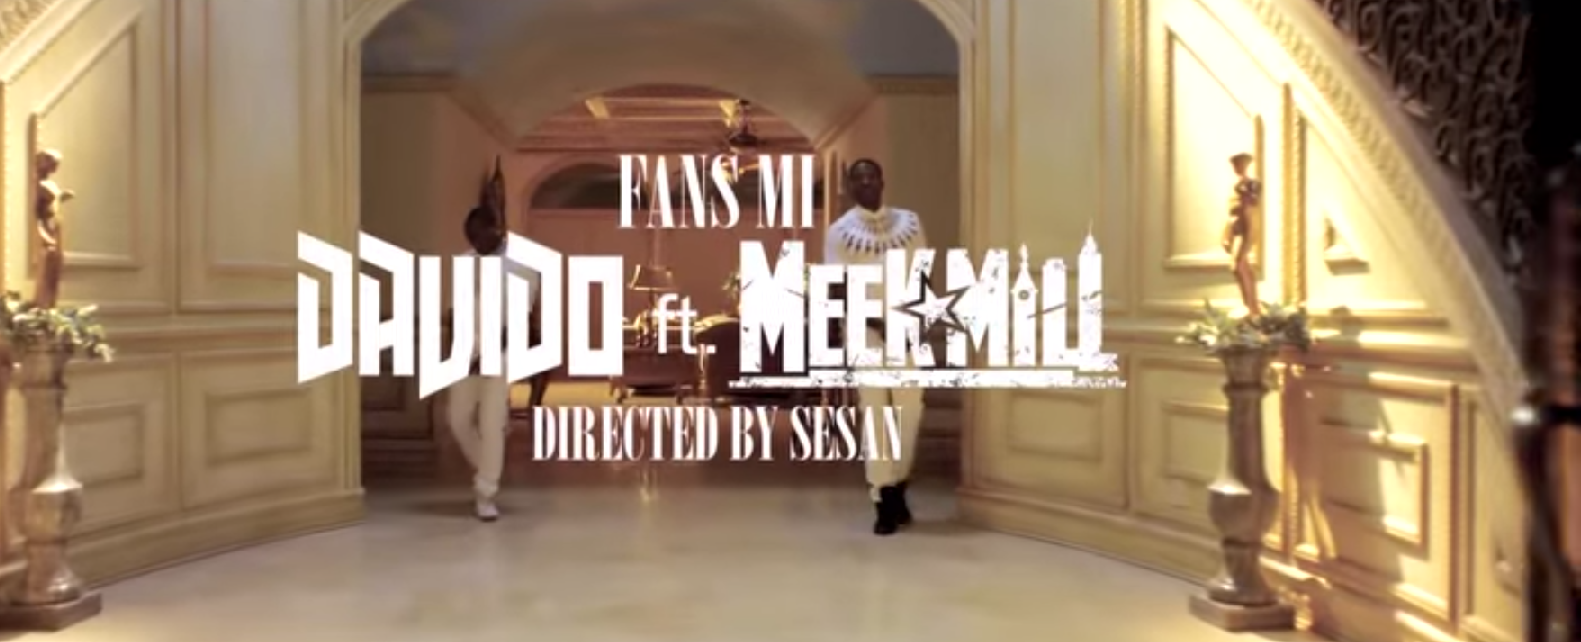 Davido Meek Mill Fans Mi Video